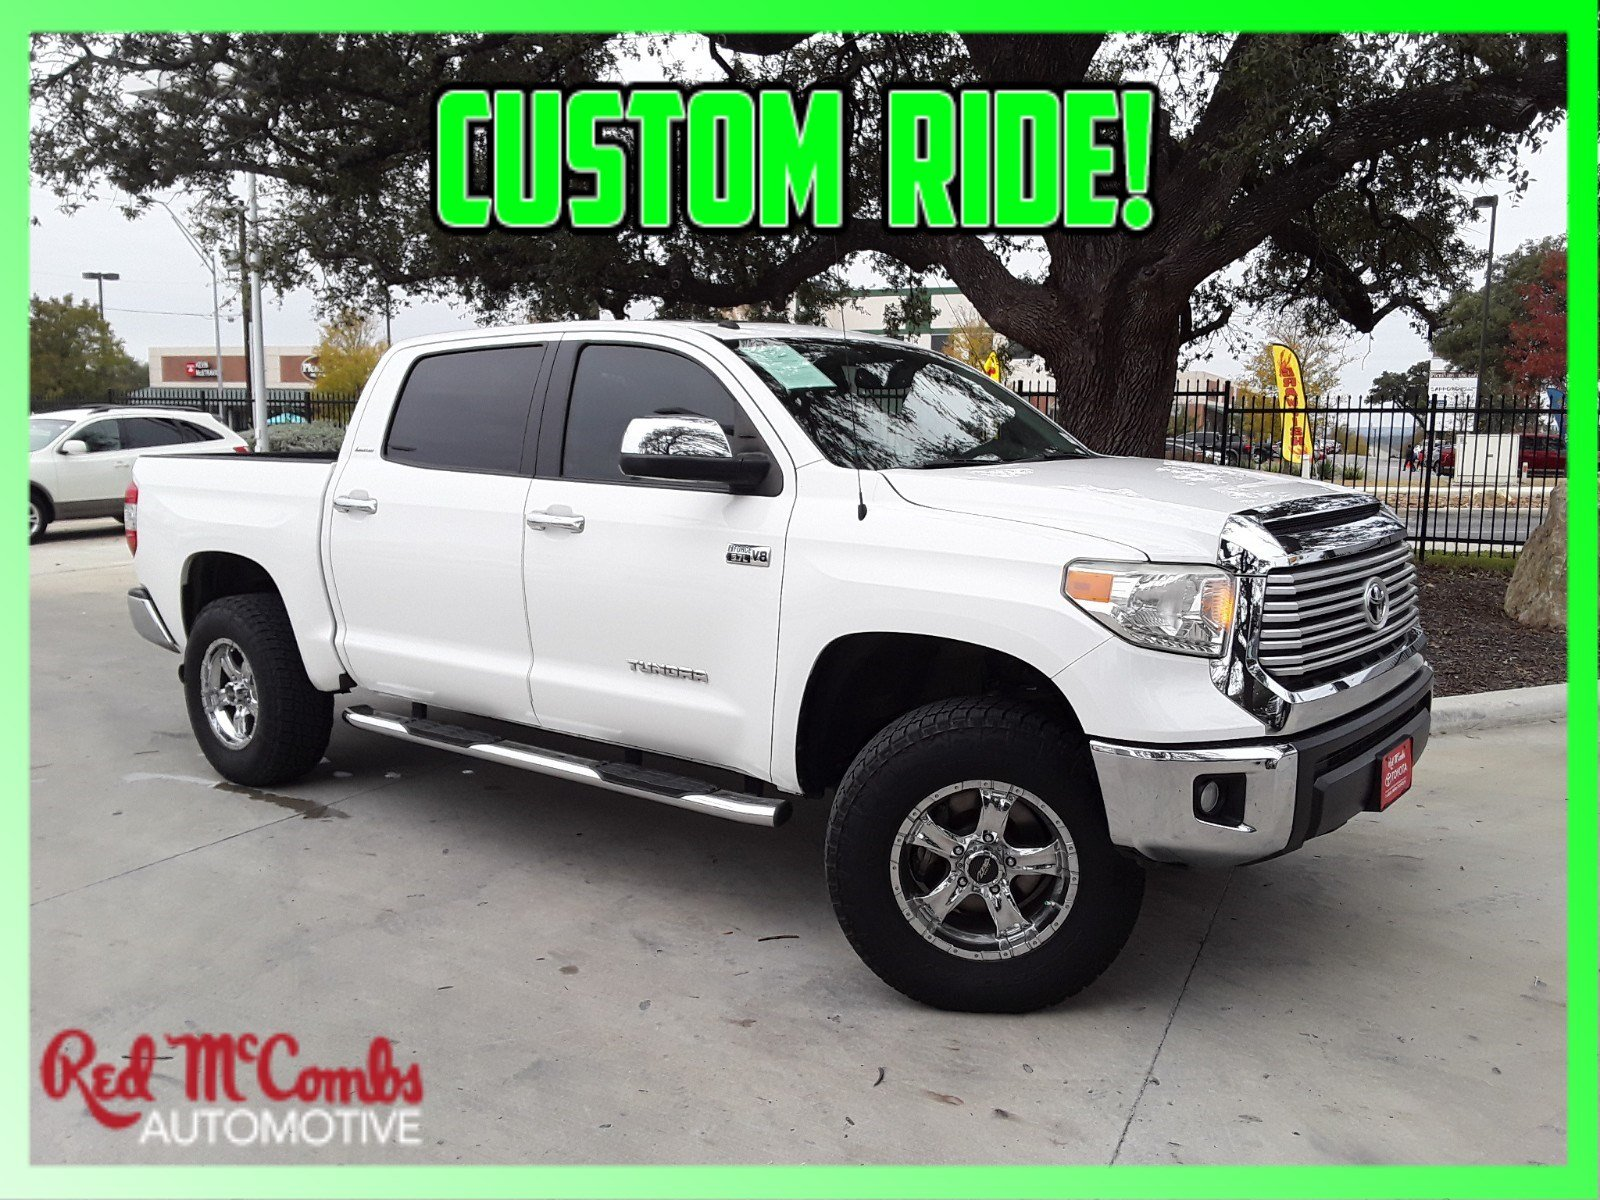 Pre Owned 2014 Toyota Tundra Limited 4x4 Crew Cab Pickup in San